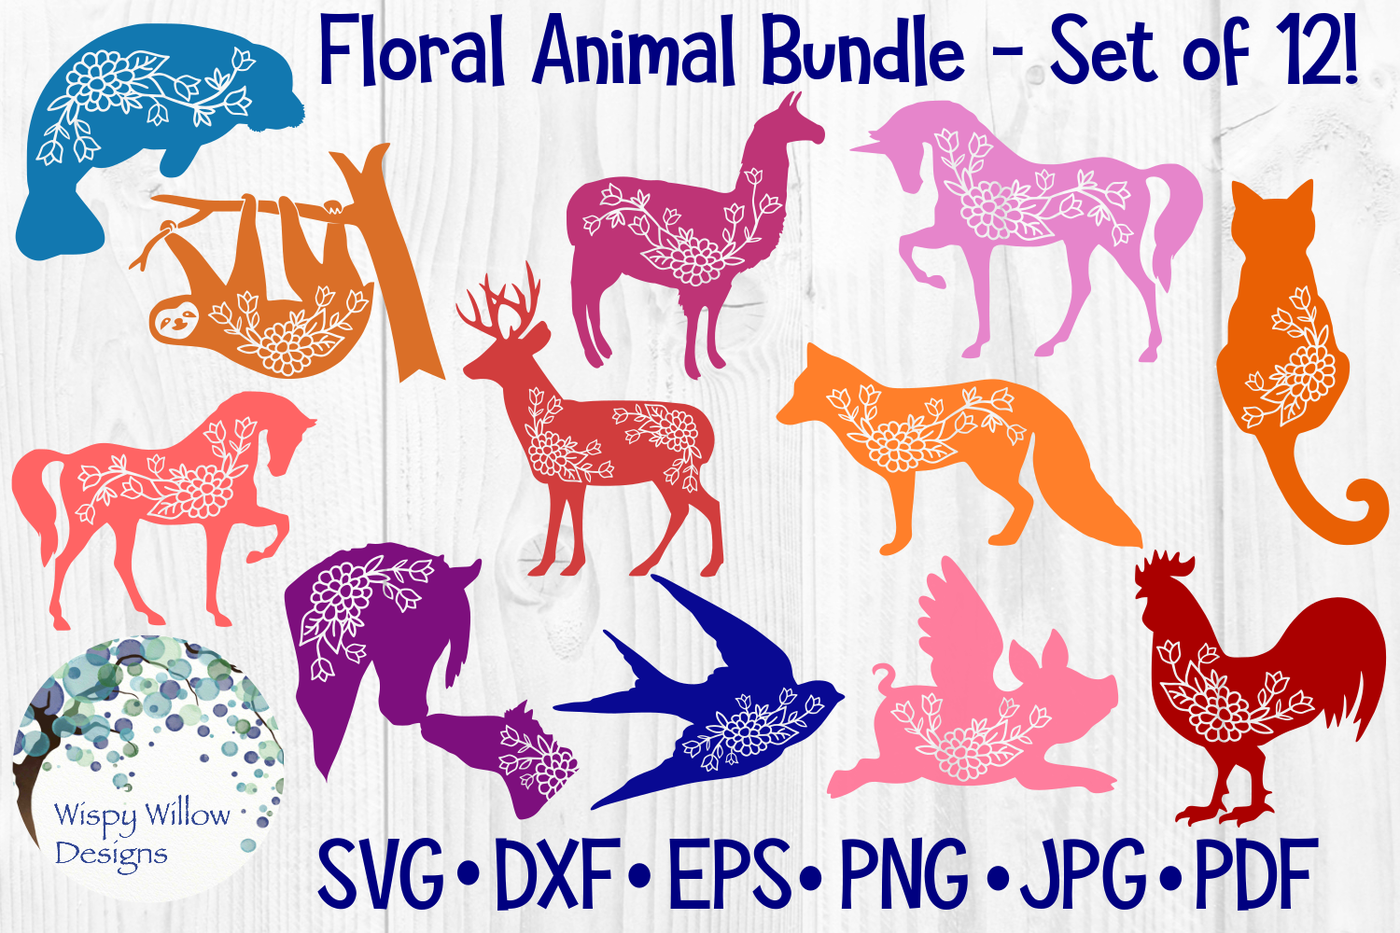 Floral Animal Bundle Svg Cut Files By Wispy Willow Designs